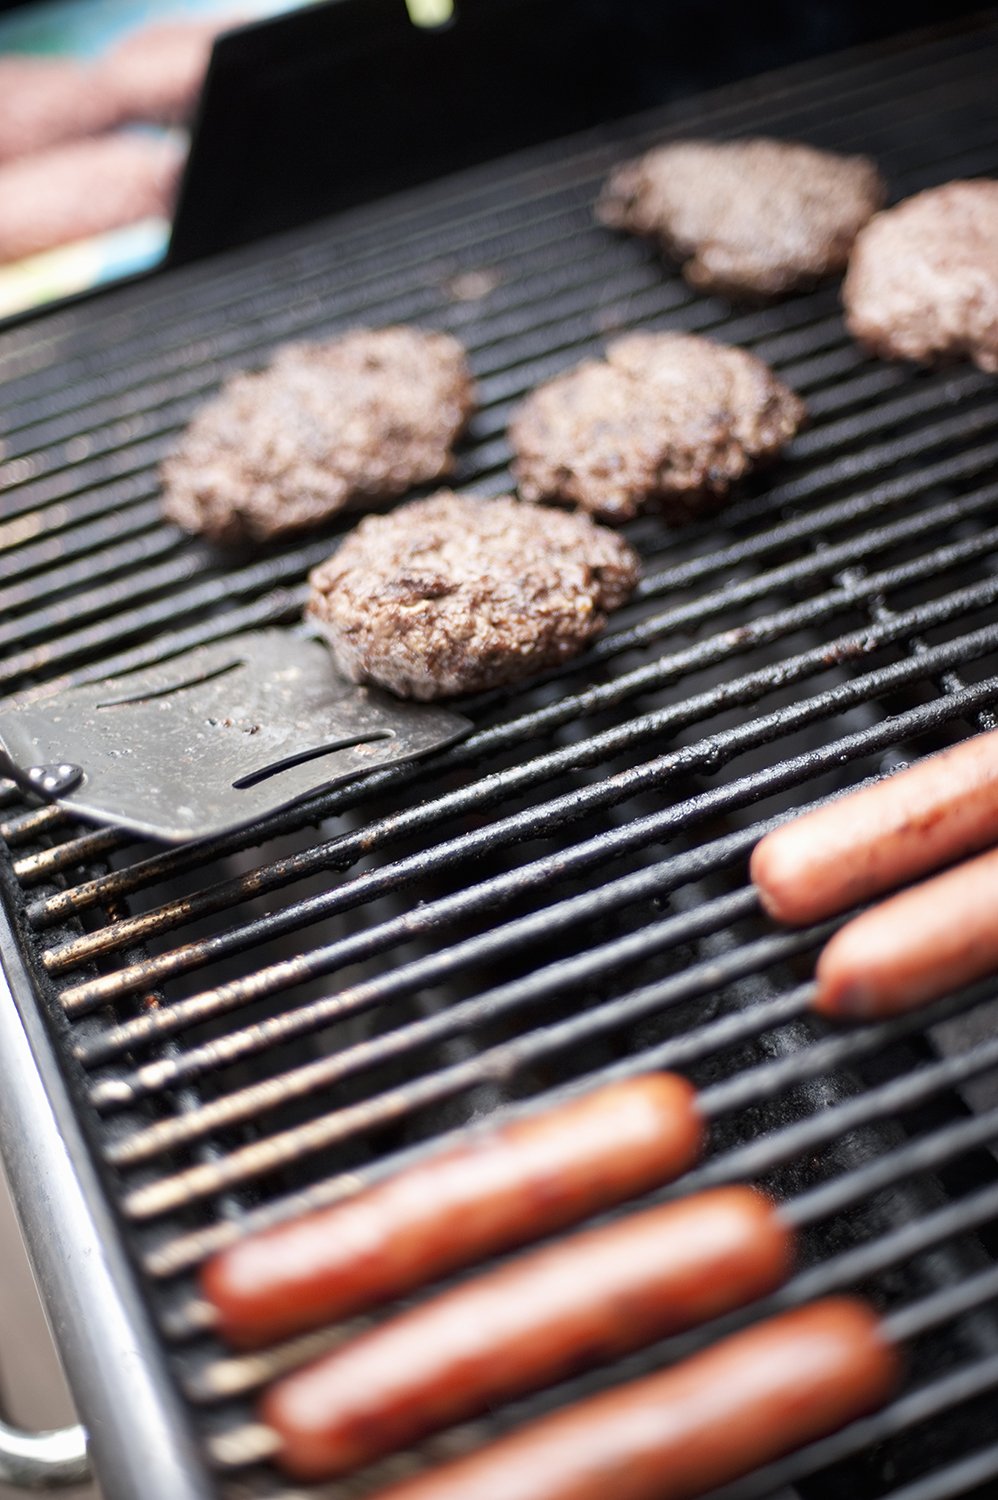 Grilled Burgers and Hot Dogs